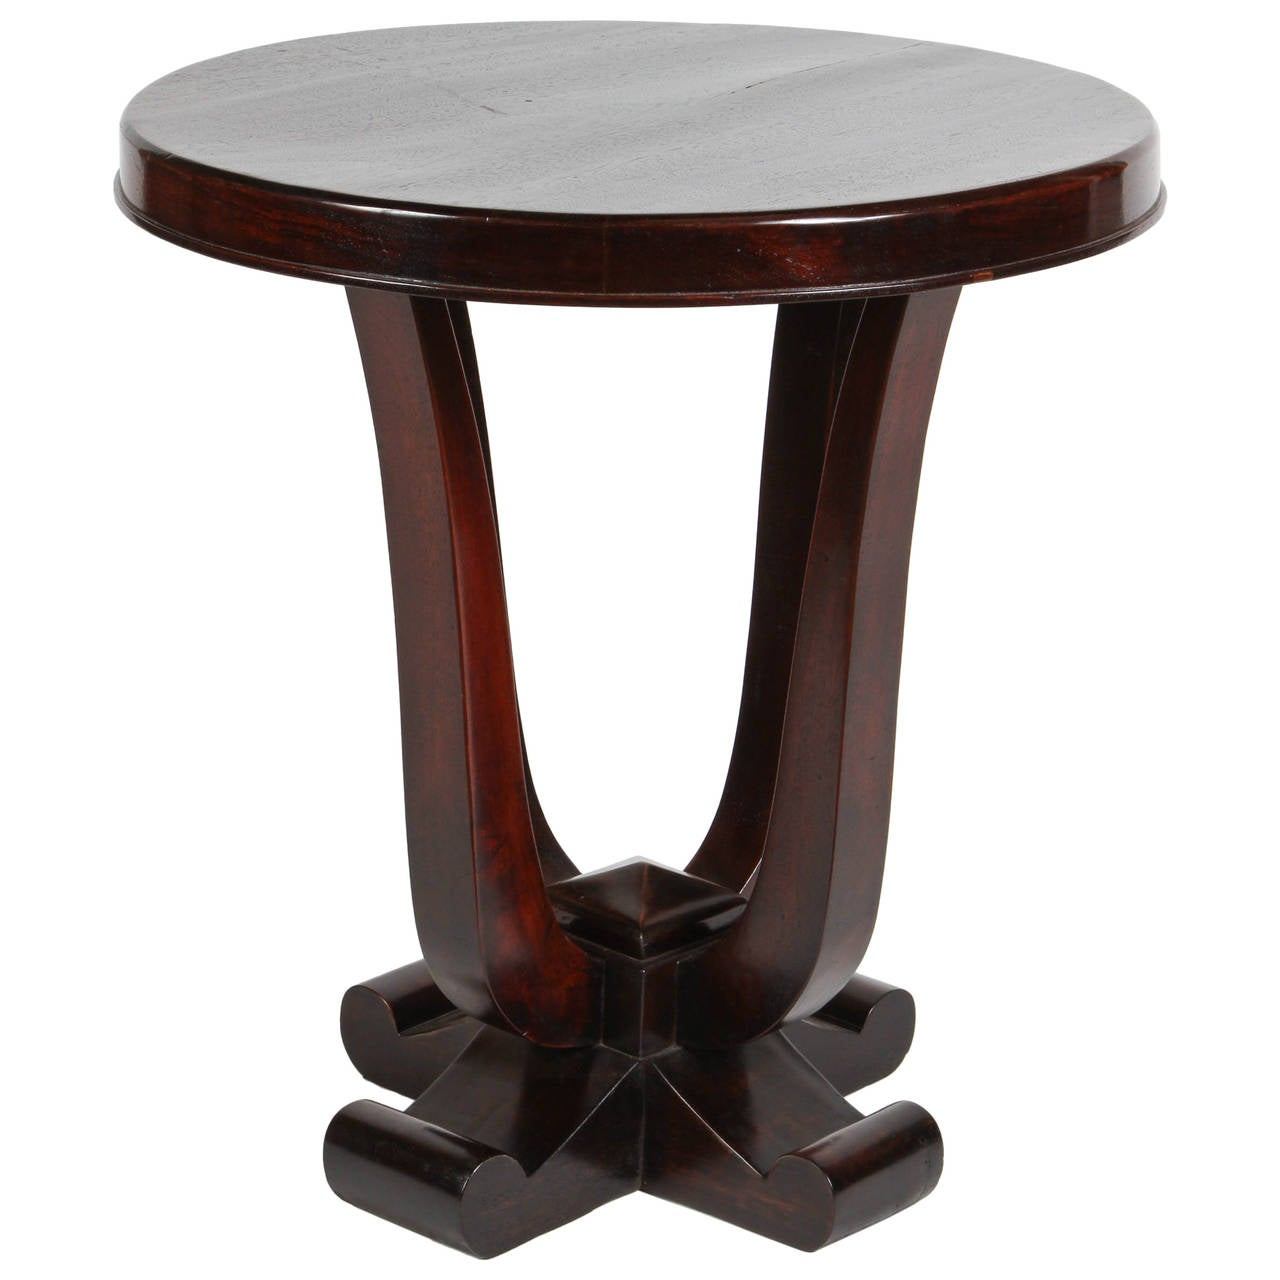 round rosewood art deco table for sale at 1stdibs. Black Bedroom Furniture Sets. Home Design Ideas